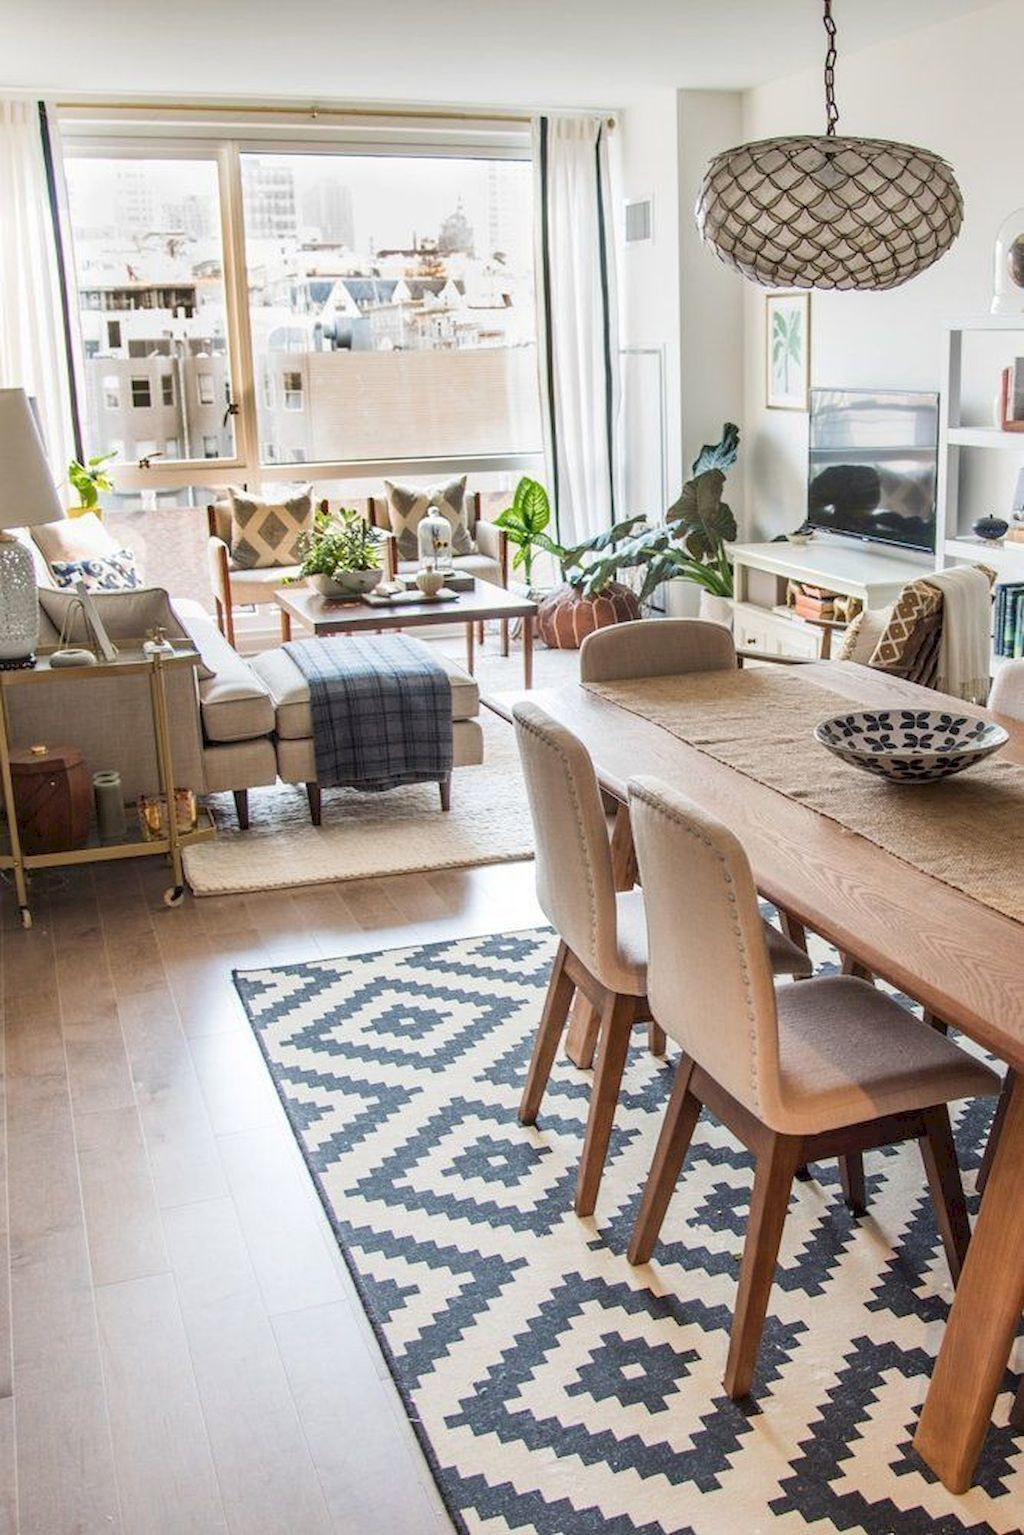 Decoration Ideas For Your Small Dining Room In 2020 With Images